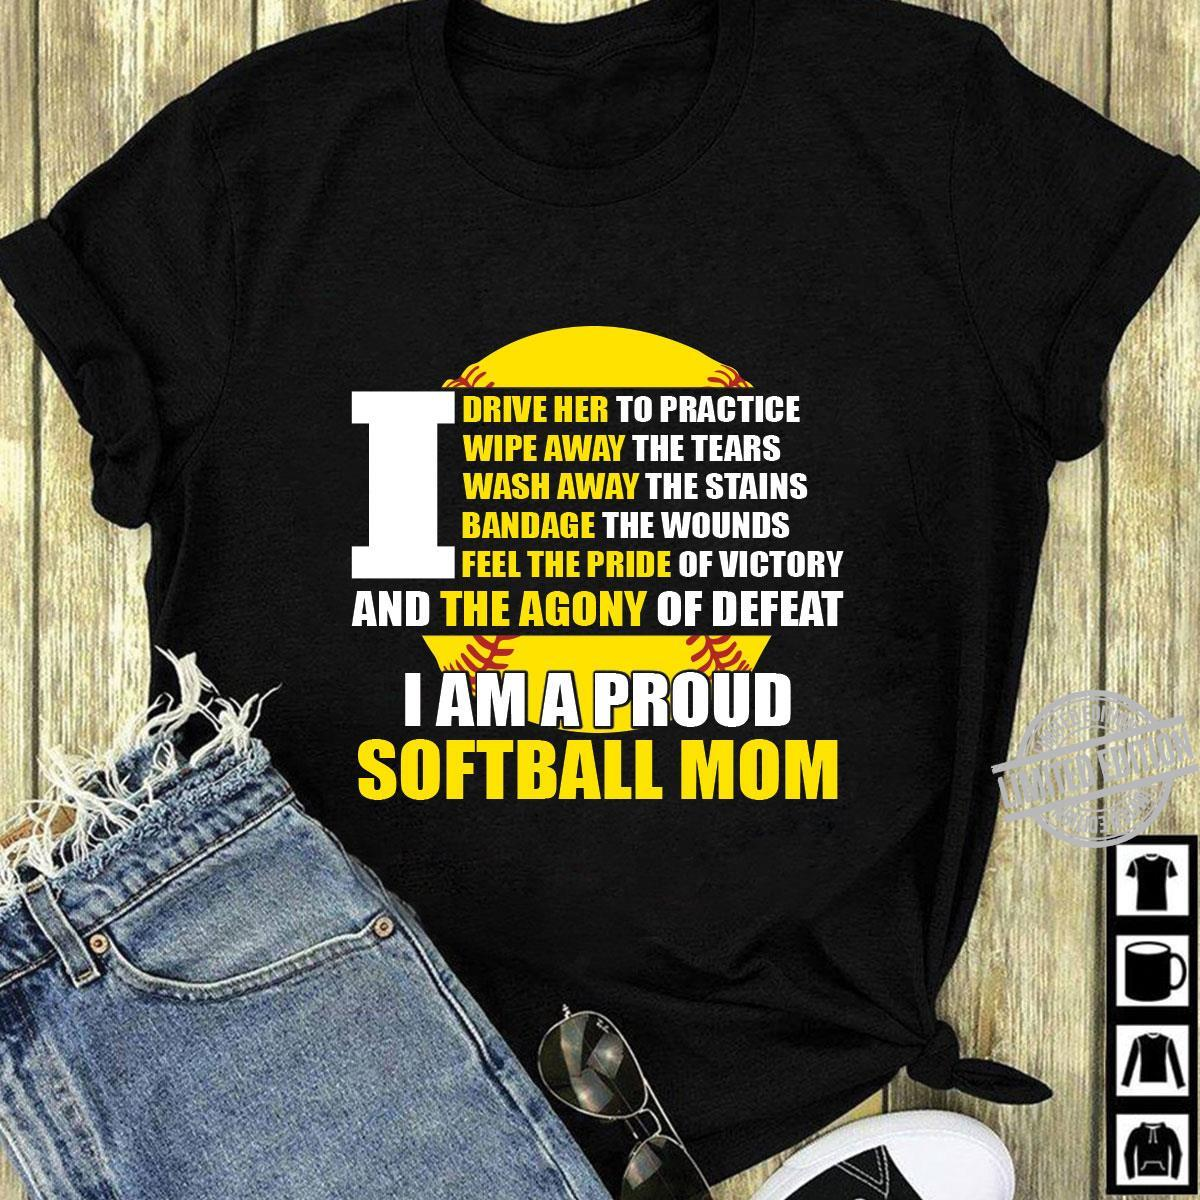 I Drive Her To Practive Wipe Away The Tears Wash Away The Stains I Am A Proud Softball Mom Shirt